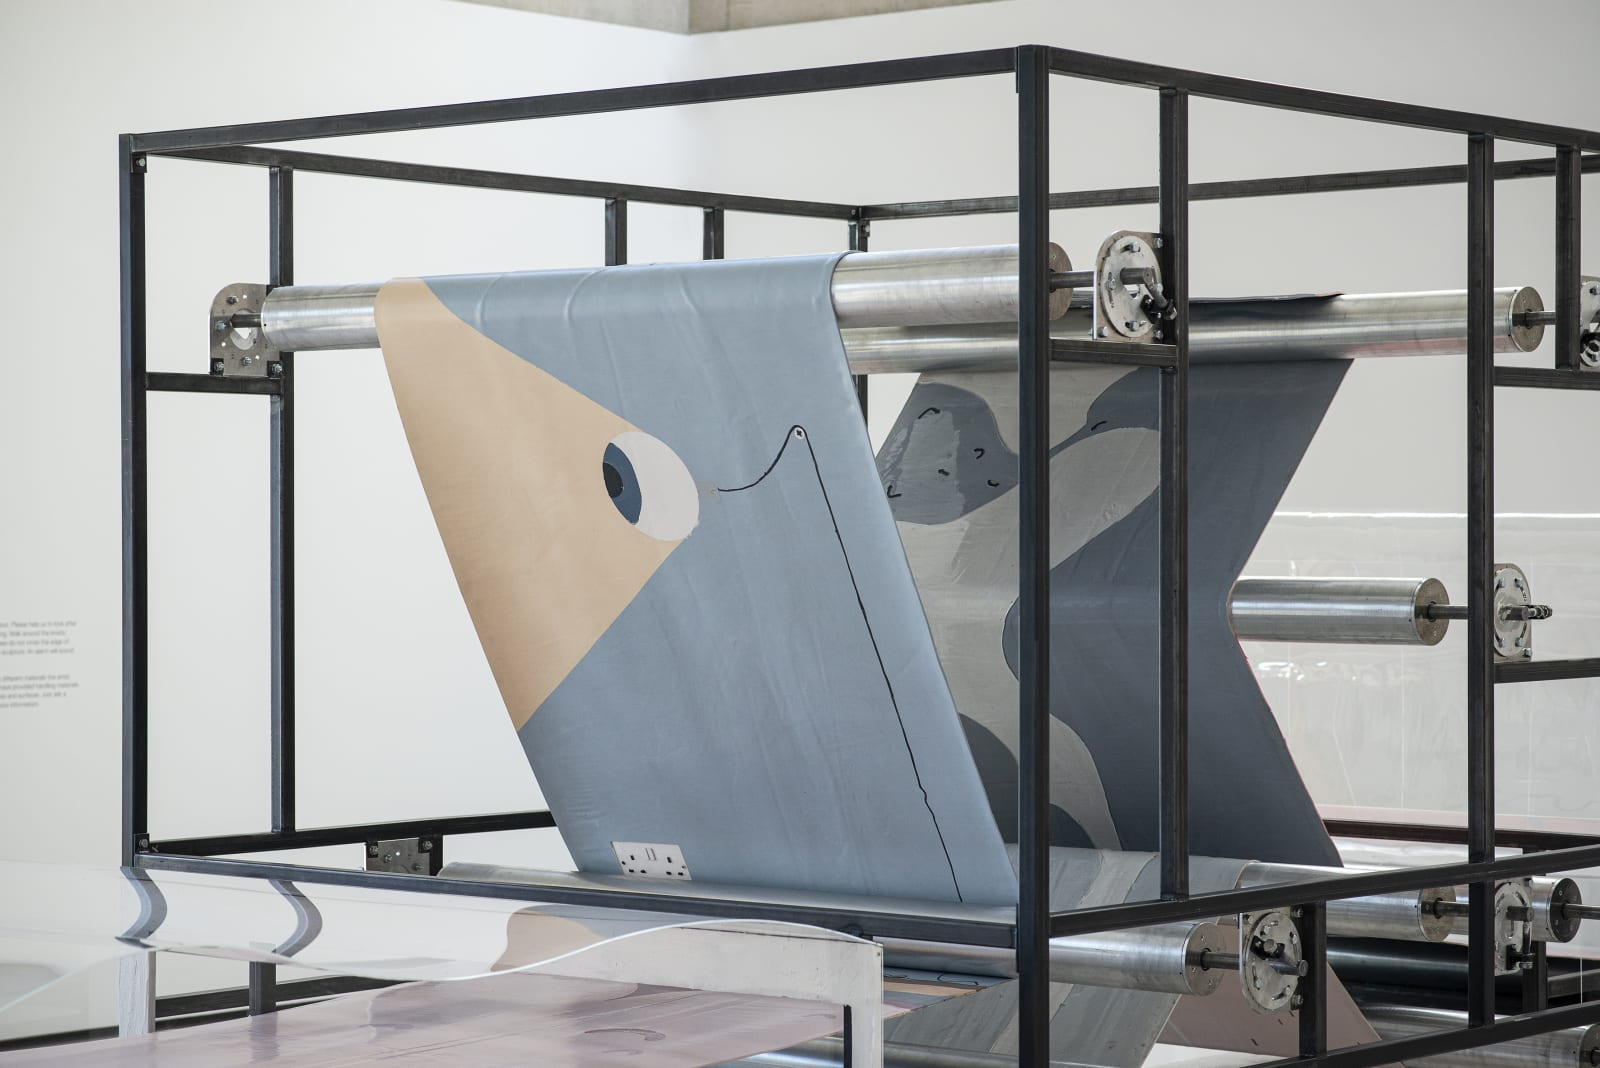 <p>Installation view: 'The Dump is Full of Images', Solo Exhibition, Weston Gallery, Yorkshire Sculpture Park, Yorkshire (2019).</p>